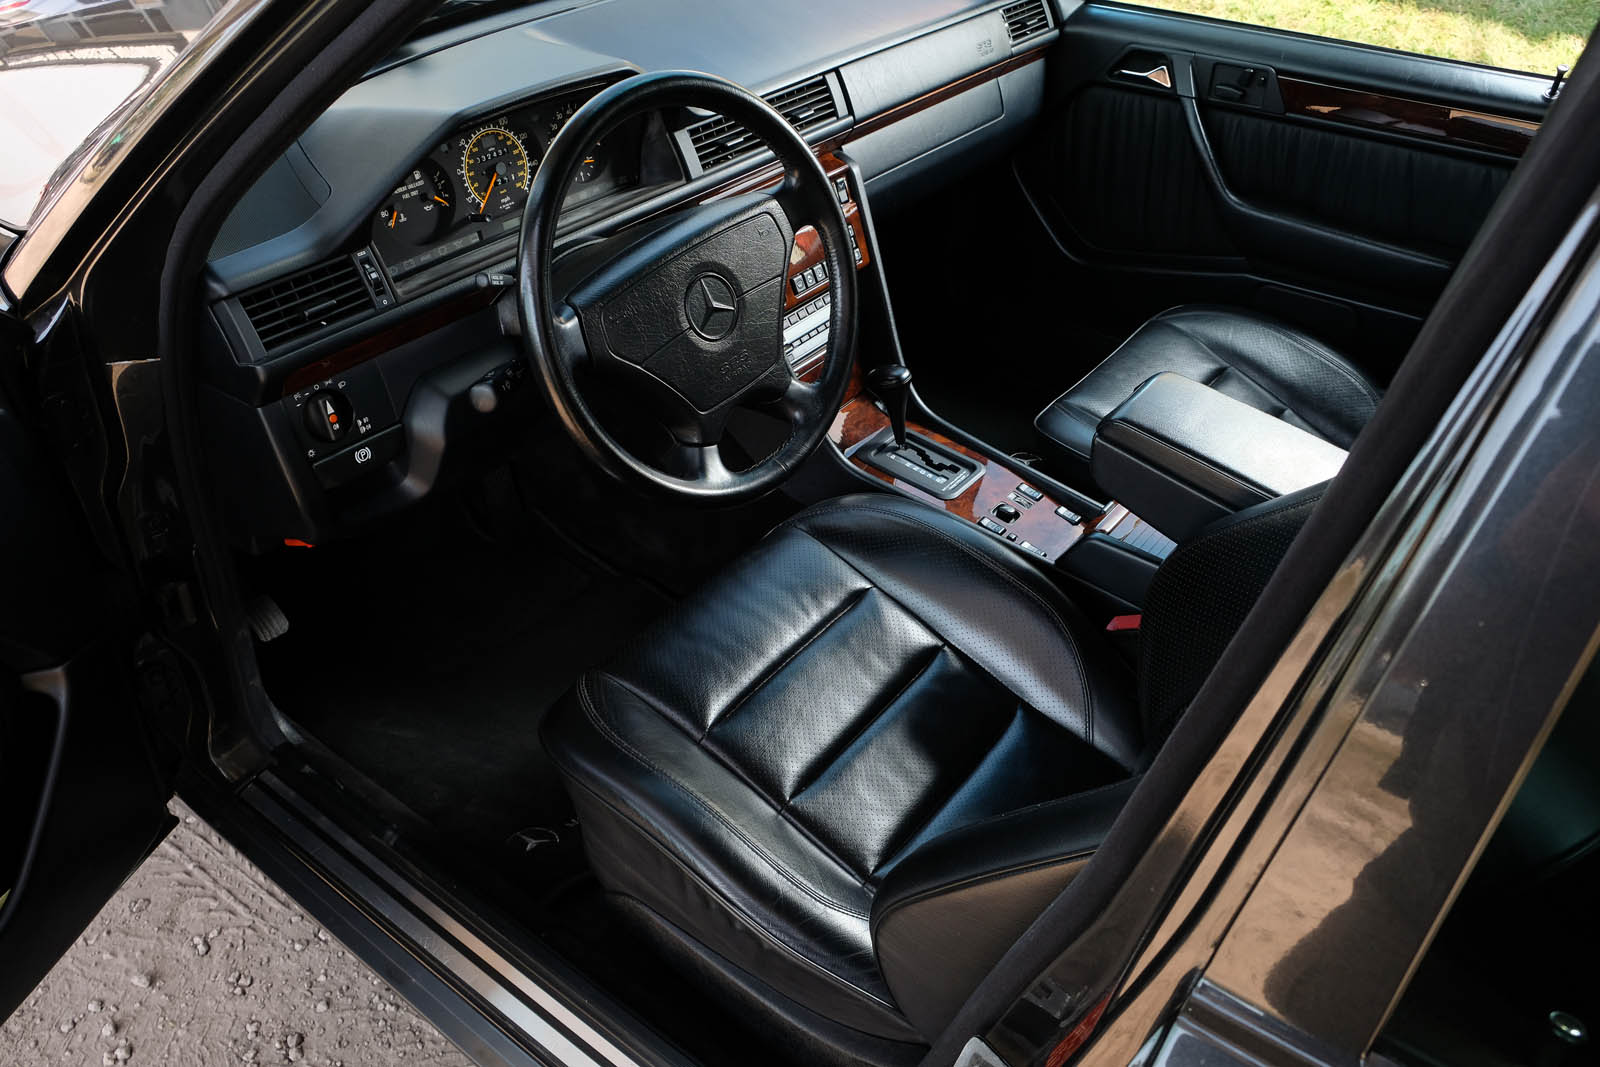 Mercedes-Benz 500E interior